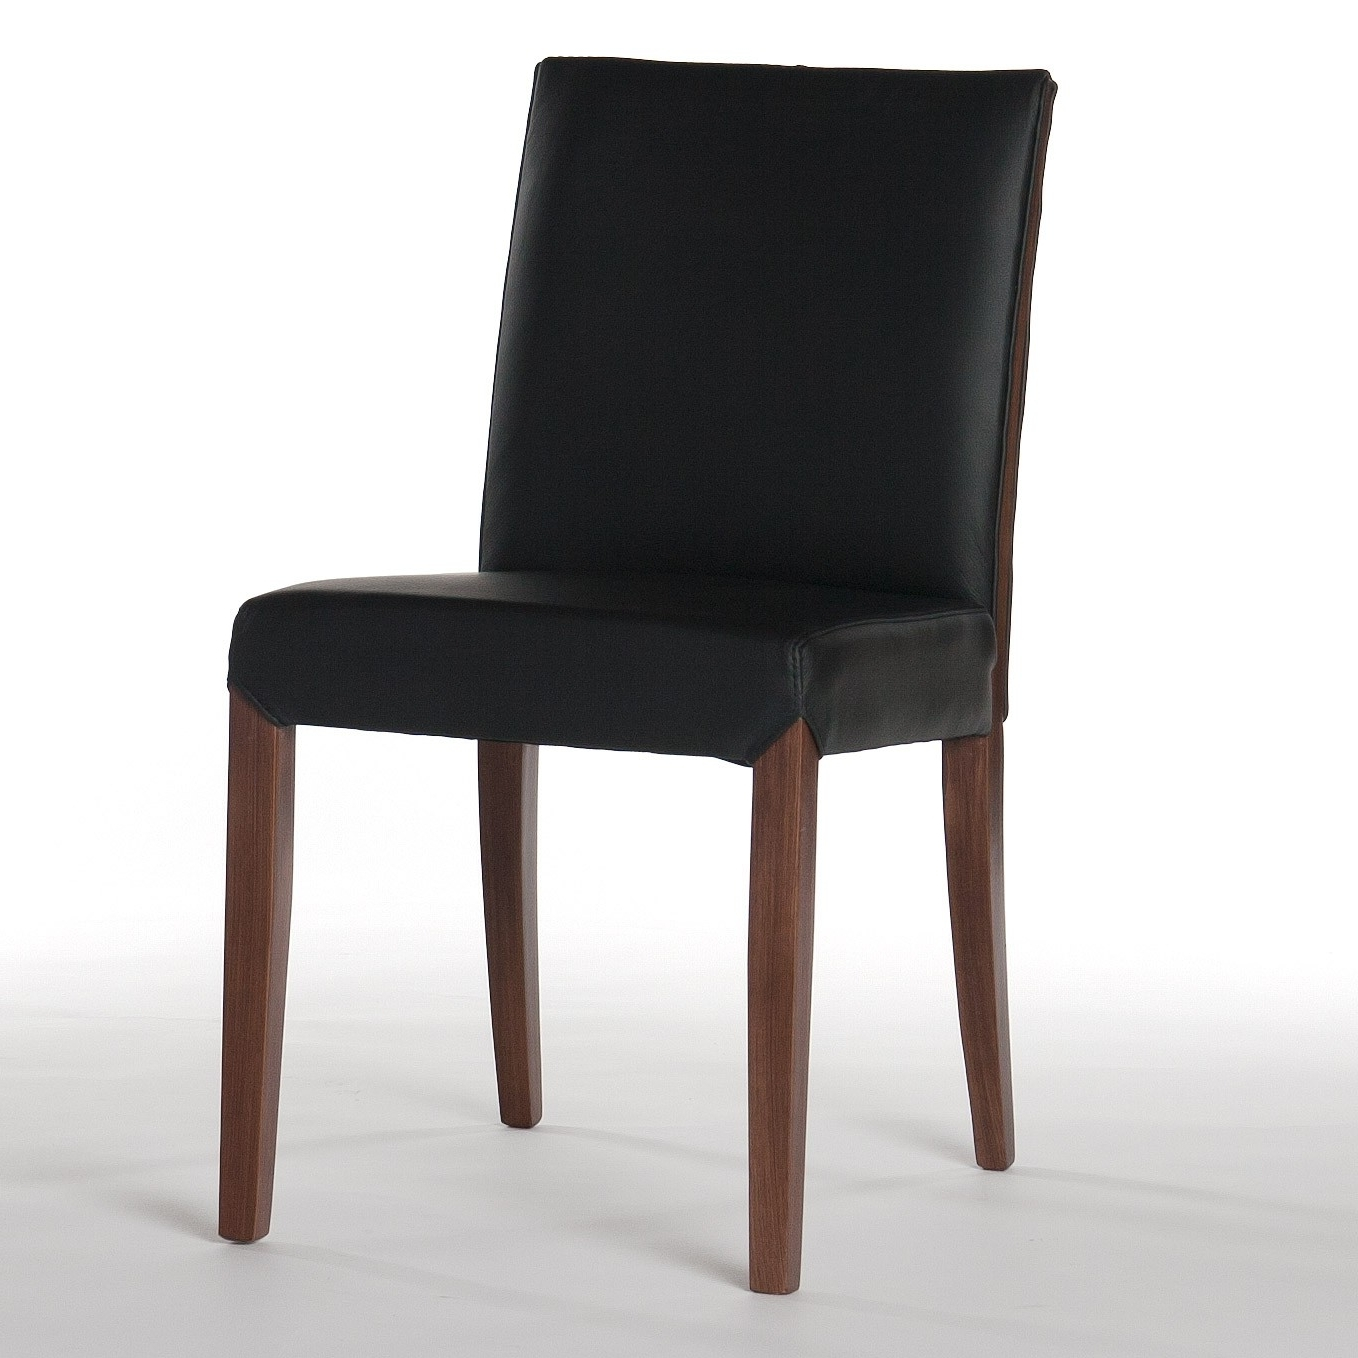 Real Leather Dining Chairs Within Most Popular Real Leather Dining Chair In Black Brookline Tufted Dining Chair (View 23 of 25)